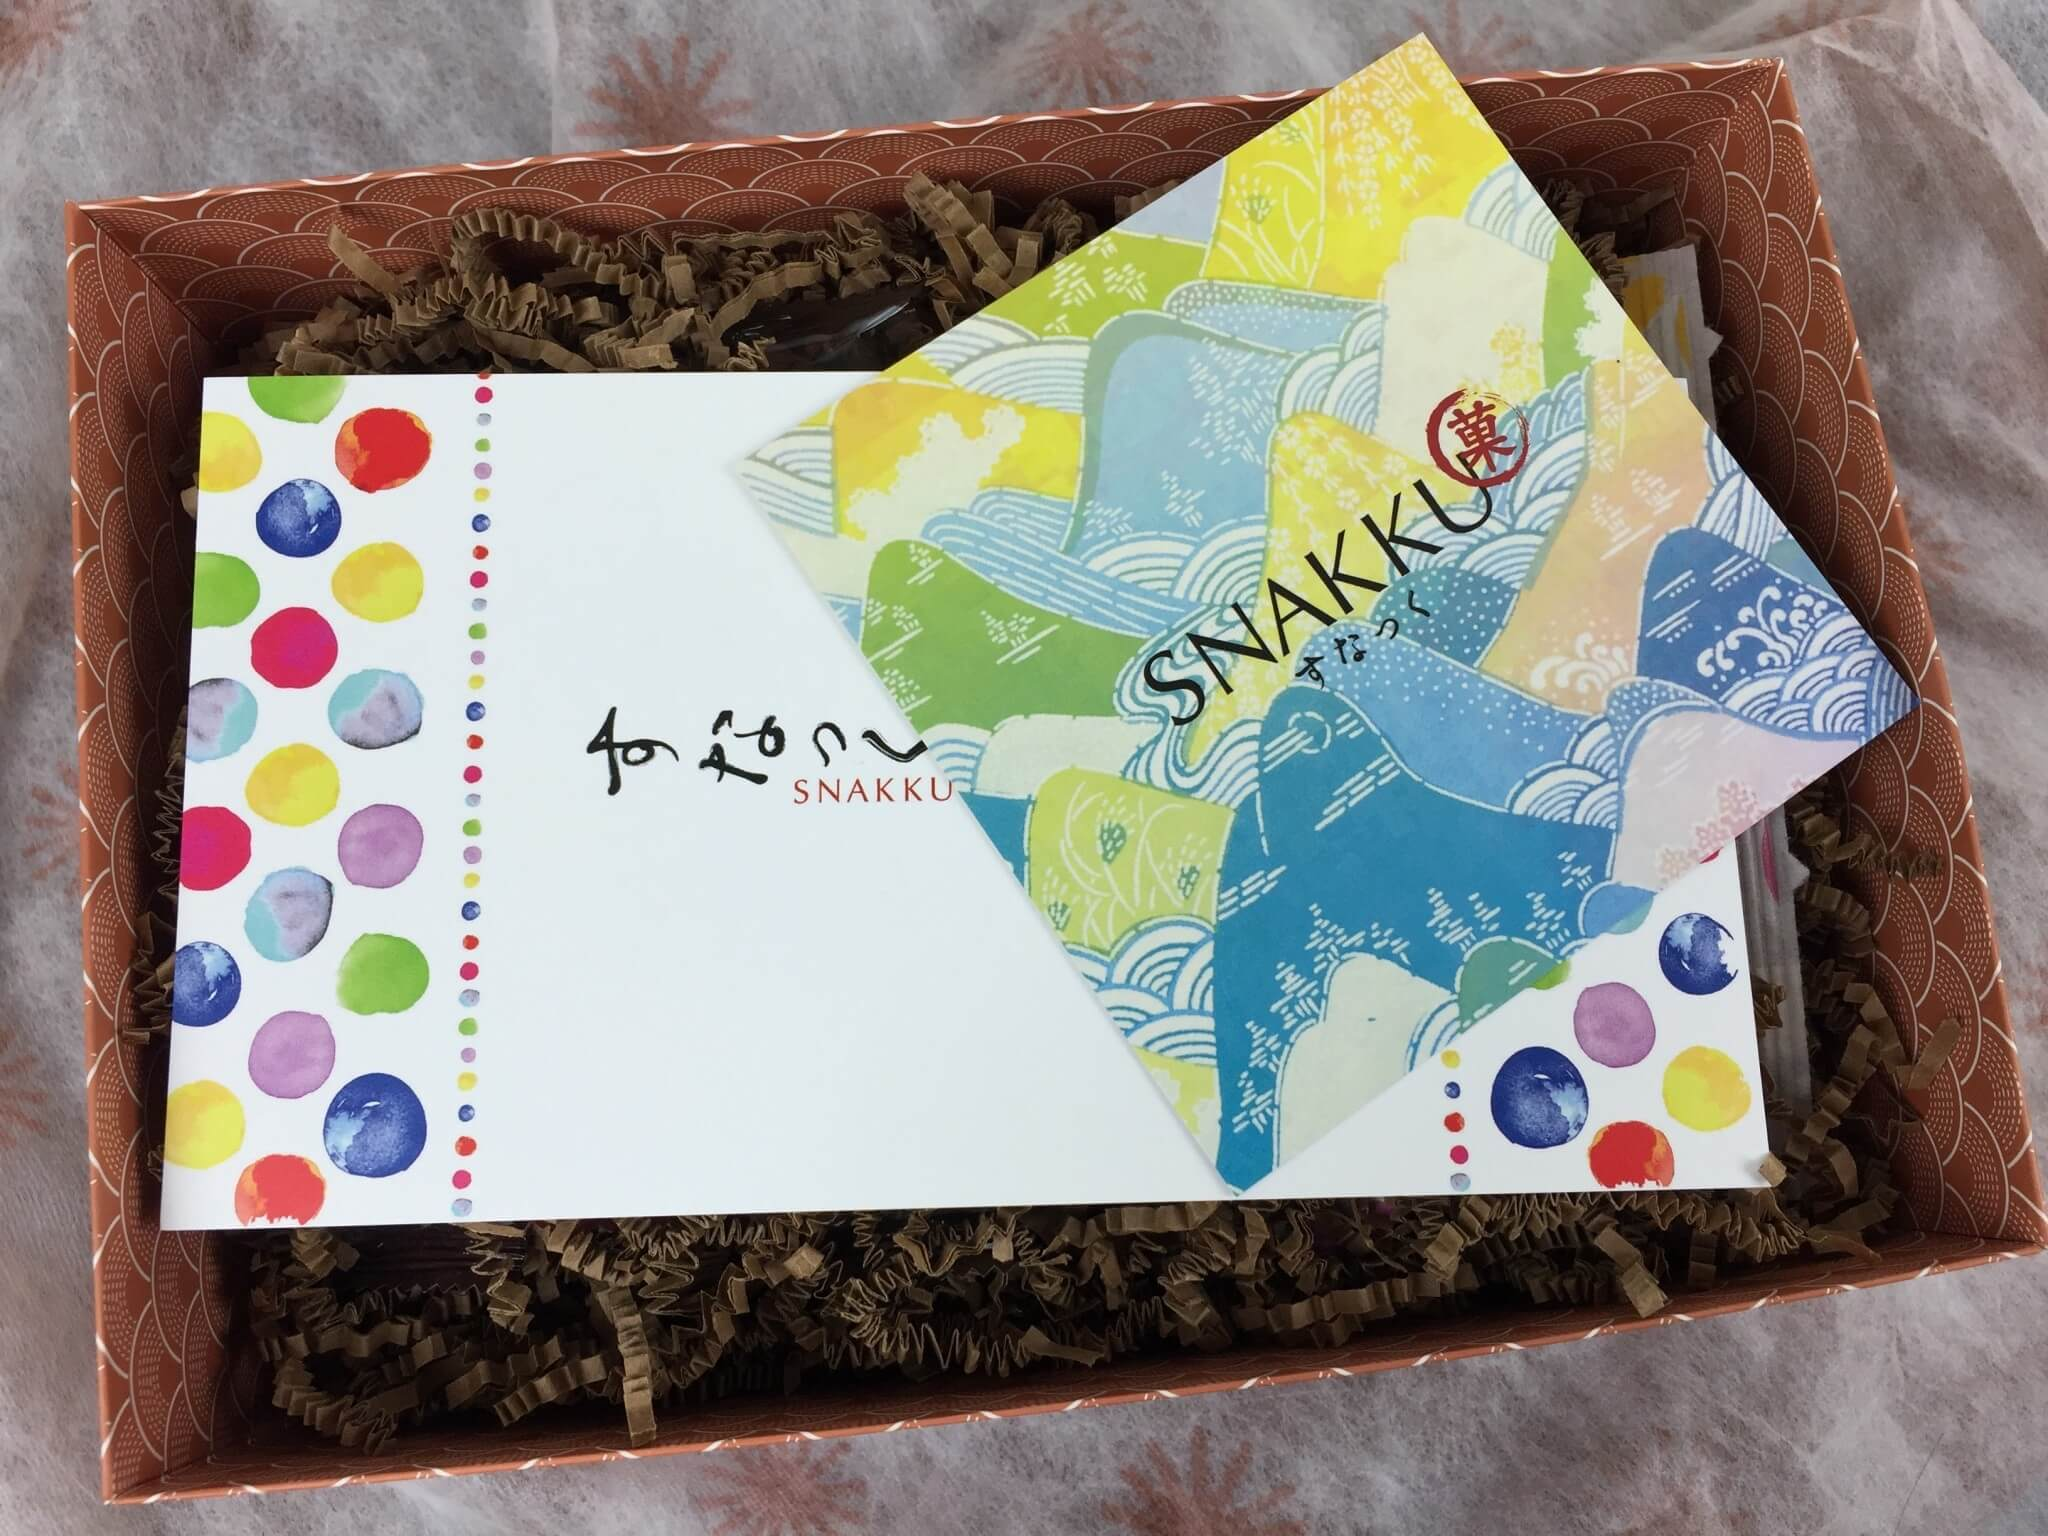 Snakku January 2016 Subscription Box Review & Coupon